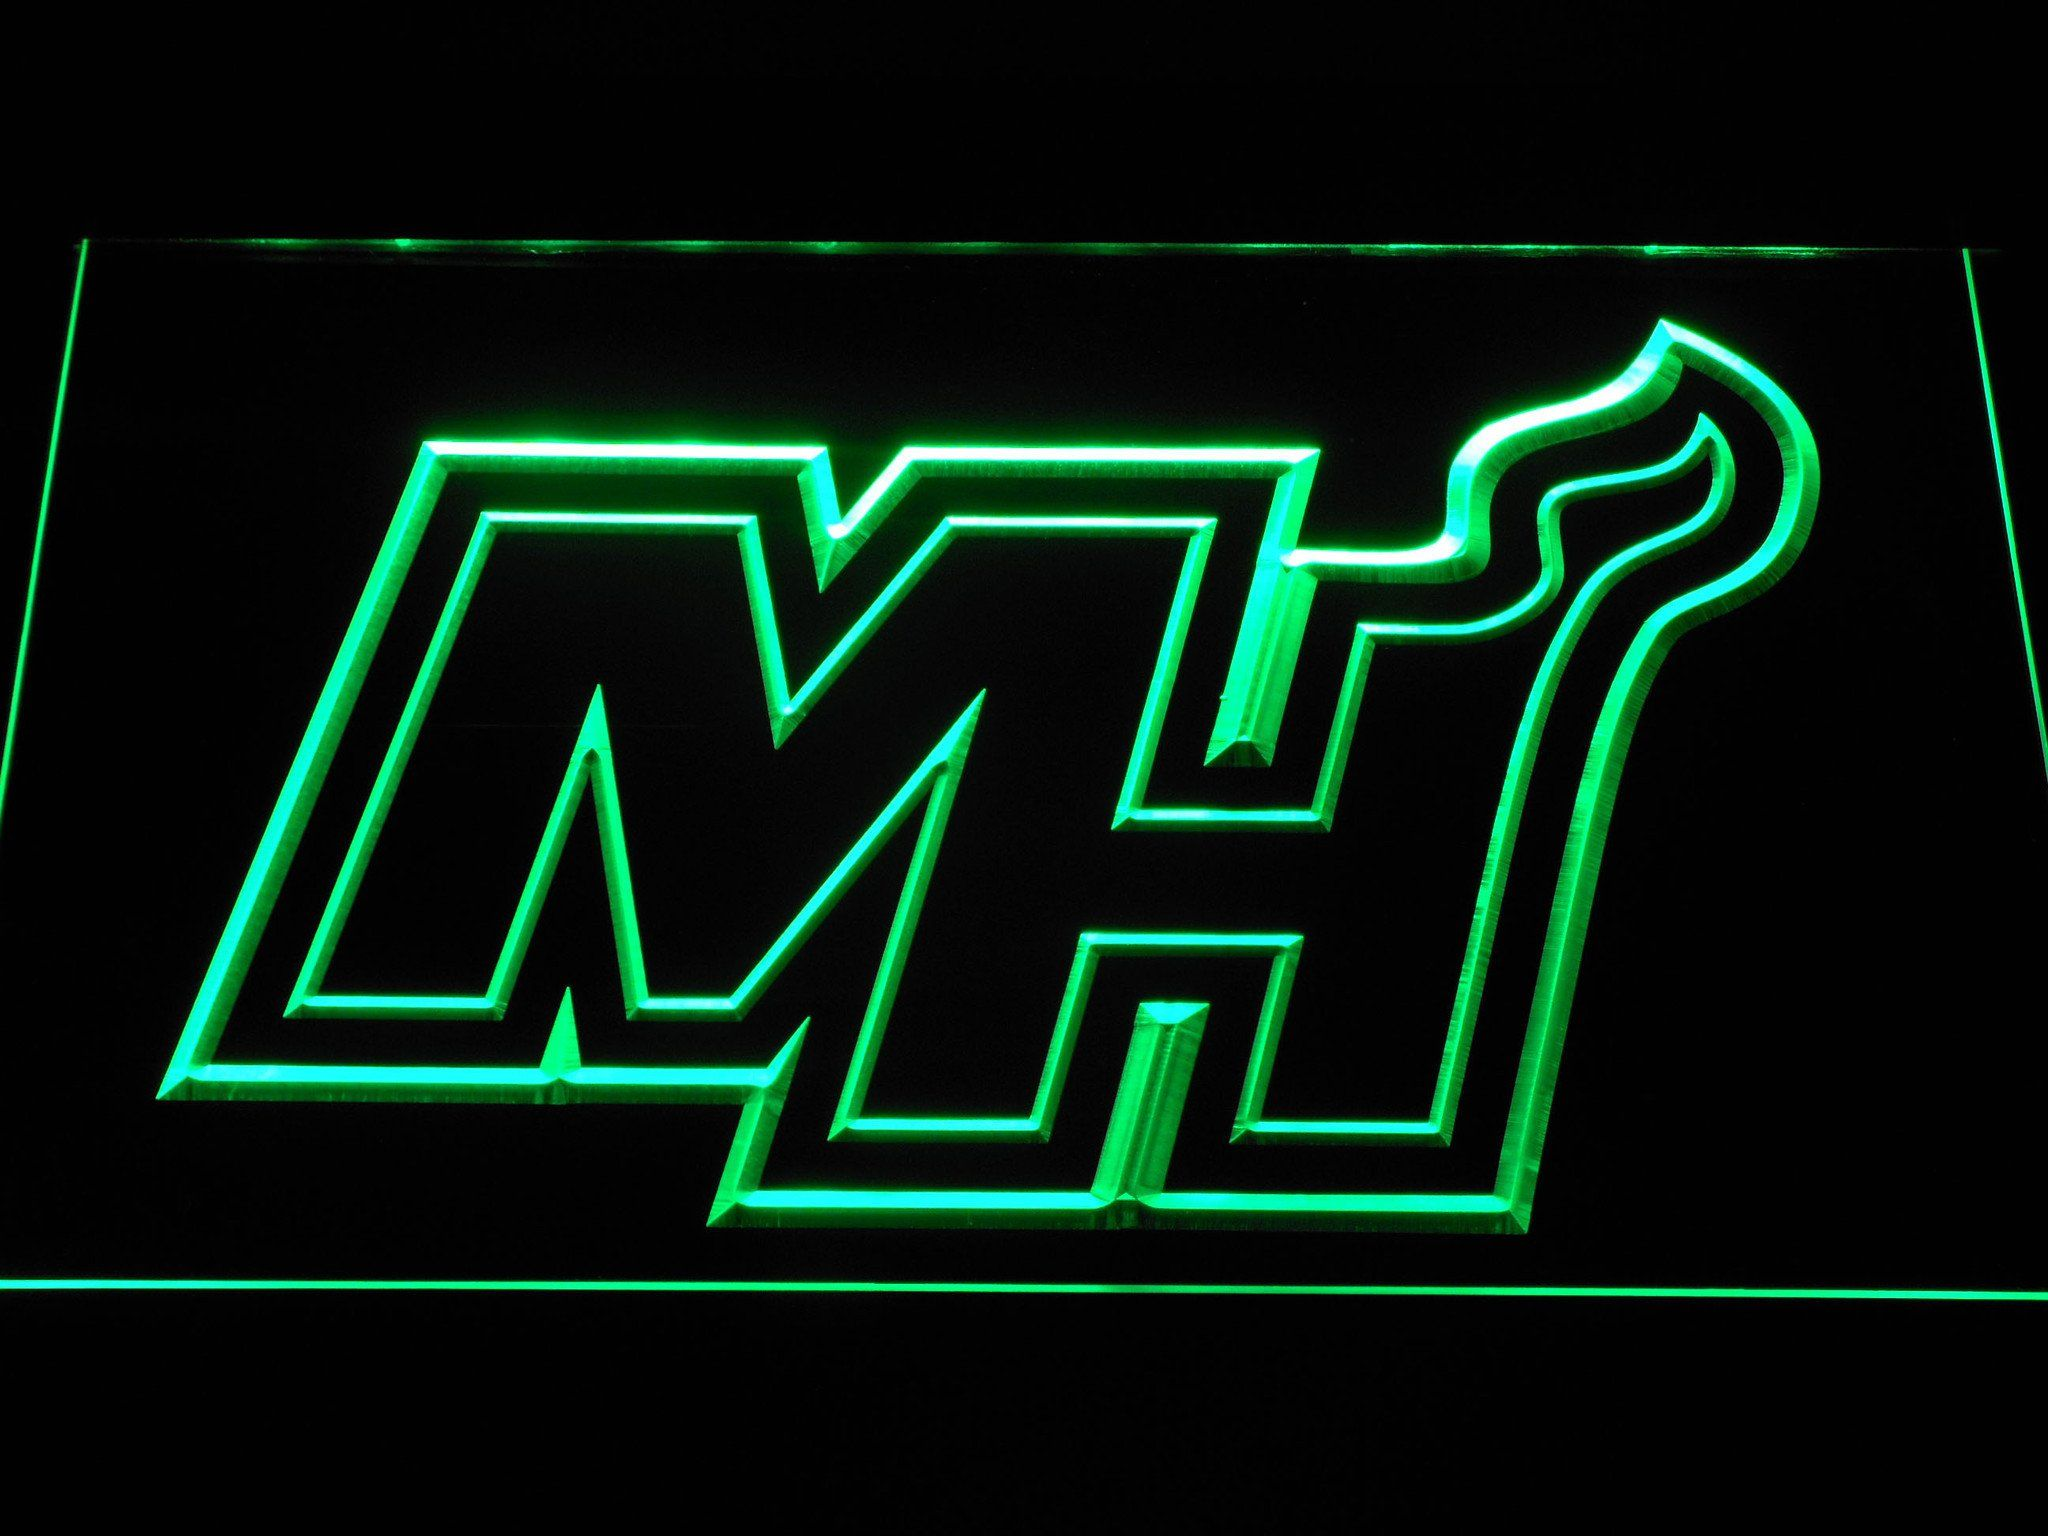 Miami Heat MH LED Neon Sign Led neon signs, Neon signs